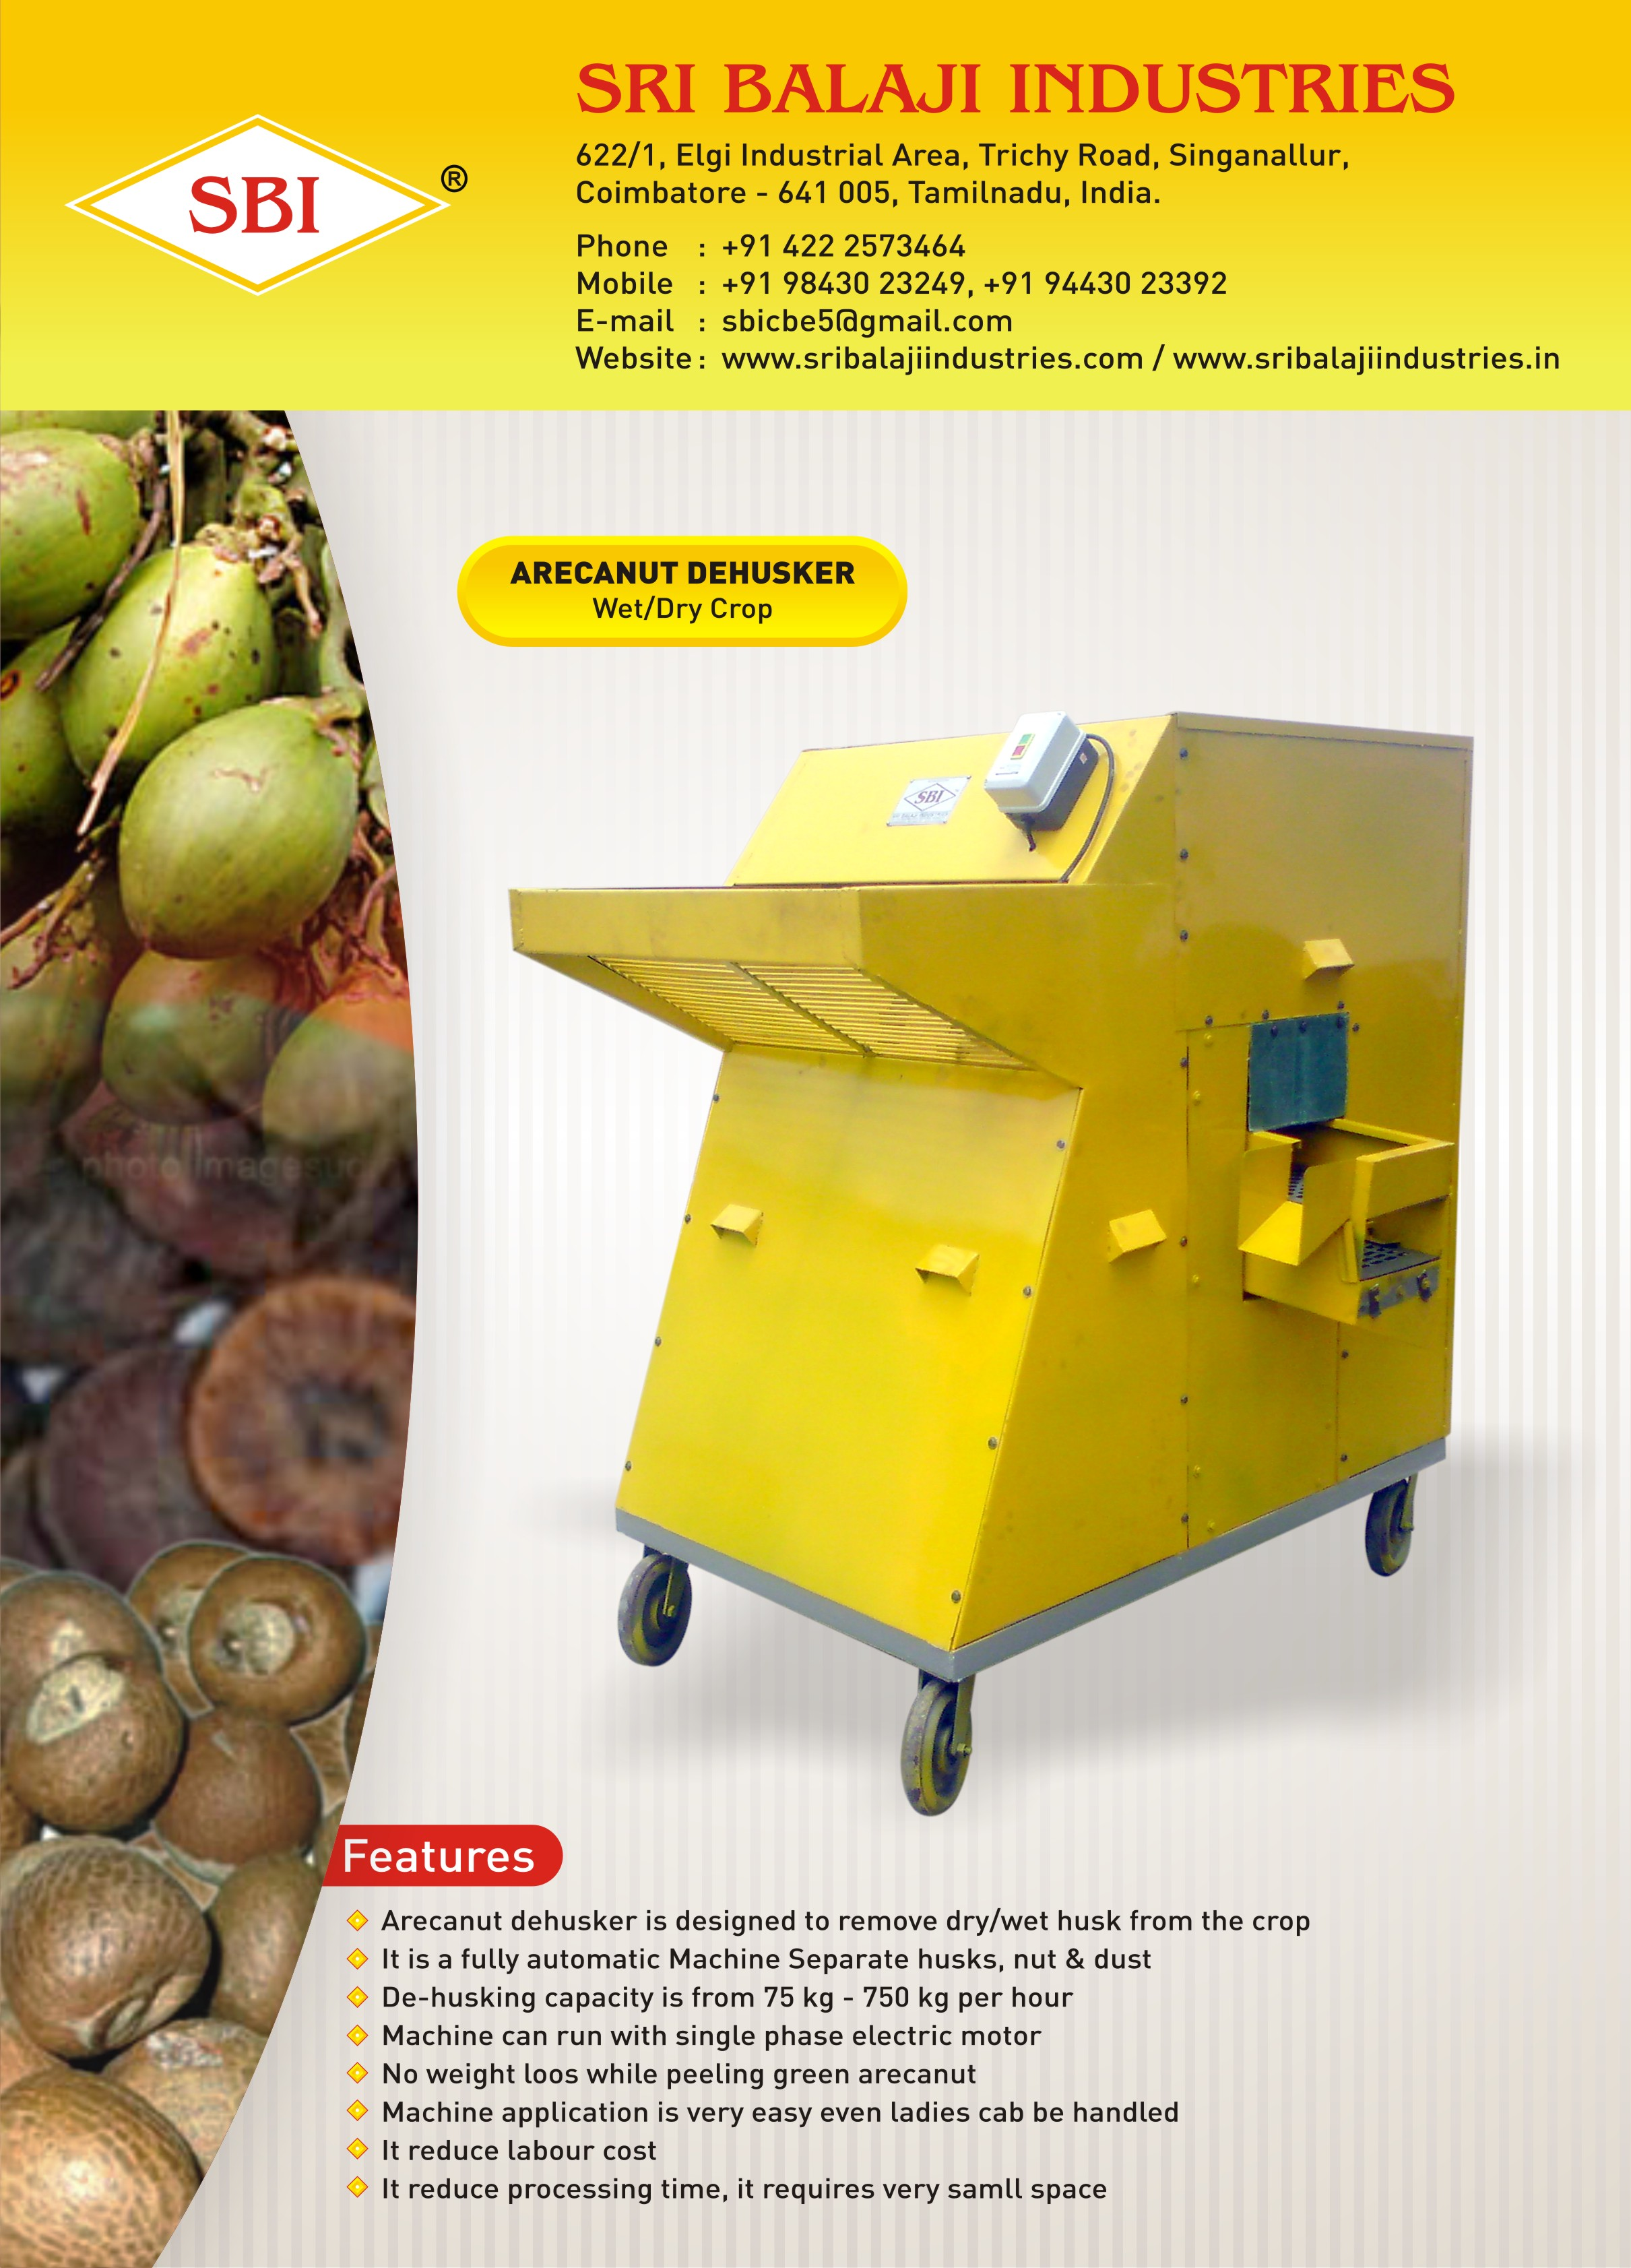 Arecanut Dehusker  Arecanut Dehusker Machine is designed to remove dry & wet husk from the crop. It is a fully automated machine, it separates husk, nuts and unpeeled arecanut. De-Husking capacity is 75 kg-450 kg per hour. Machine can be run by 1hp electric motor or by oil engine. this Dehusker is highly durable, anti-corrosive, and dimensionally accurate. The Coconut Dehusker Machine not less than 500 nuts per hour. Specifications: Capacity : 75 kg-450 kg per hour. Power : 1 hp electric motor or oil engine  For Further Details :  Please Contact us : +91 9943023249  Mail Id : sbicbe5@gmail.com   SRI BALAJI INDUSTRIES  622/1, ELGI industrial area, Trichy road singanullur, coimbatore-641005, Tamil Nadu, India.  M: +91 9943023249  P: +91 (0)422 2573464  E: sbicbe5@gmail.com  W: www.coconutmachine.in  Arecanut Dehusker Machine Manufacture in Chennai Arecanut Dehusker Machine Manufacture in  Madurai Arecanut Dehusker Machine Manufacture in Tirchy